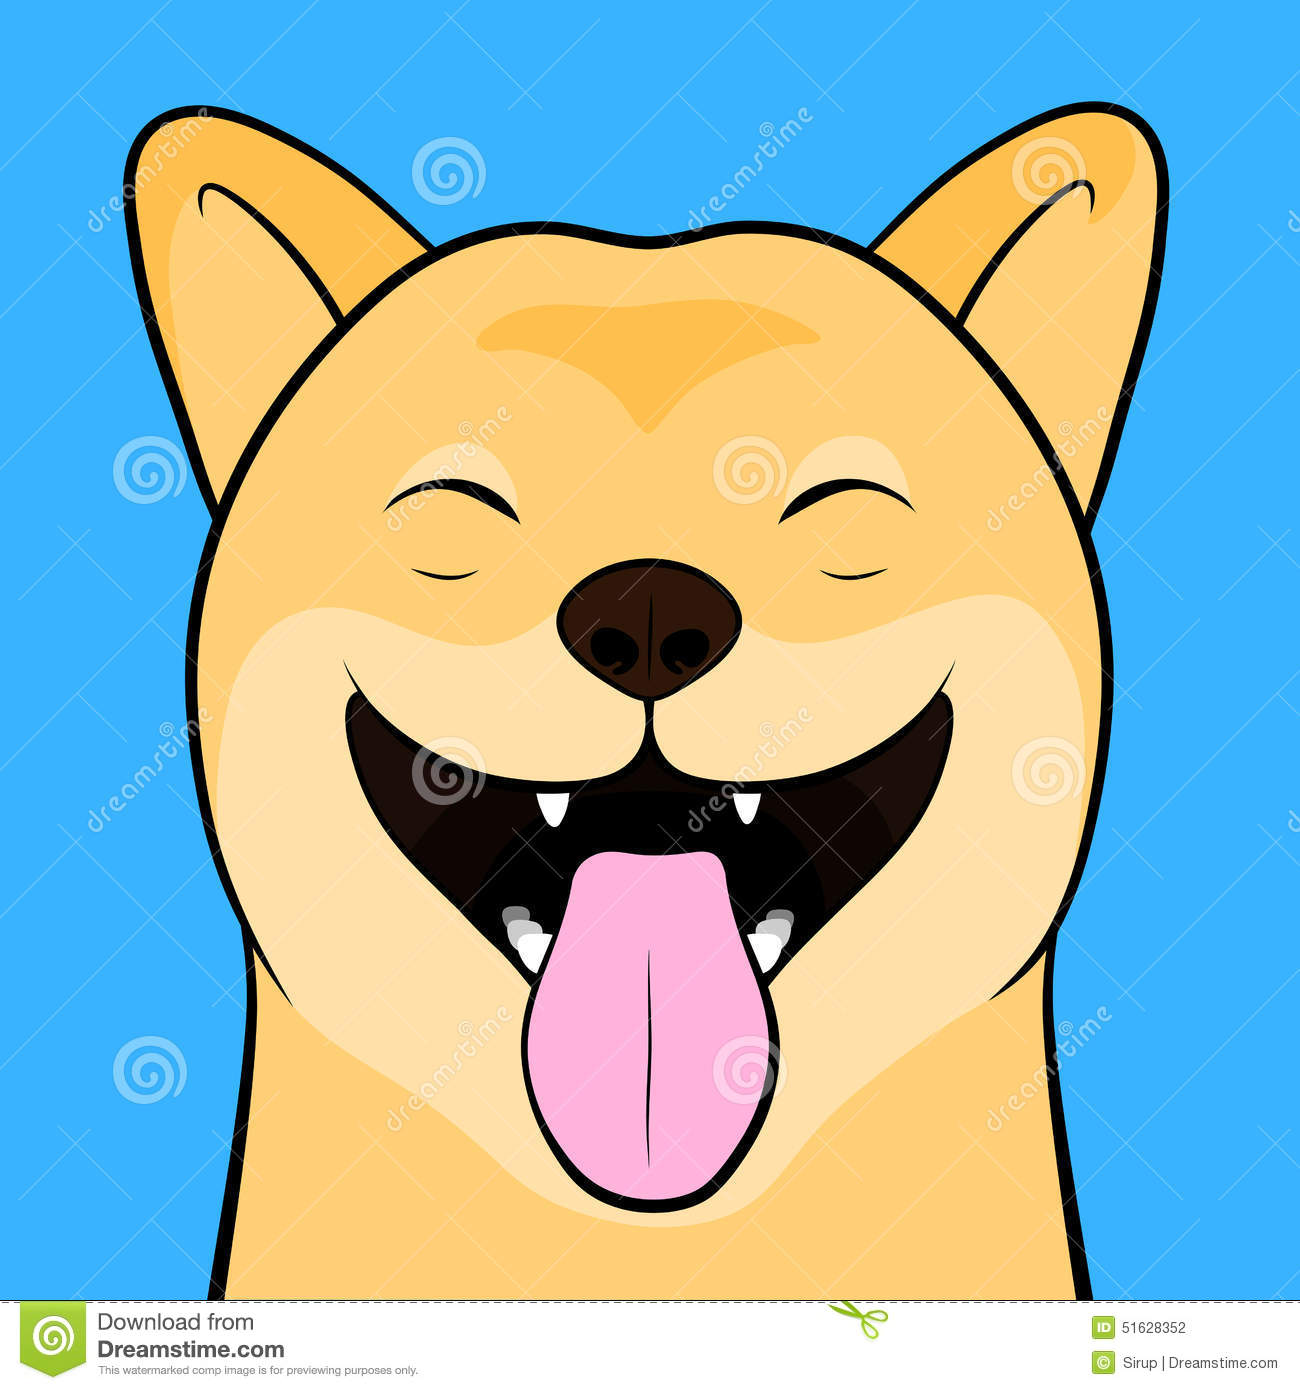 Laughing Cartooned Face Of A Shiba Inu Dog Stock Vector ... - photo#17